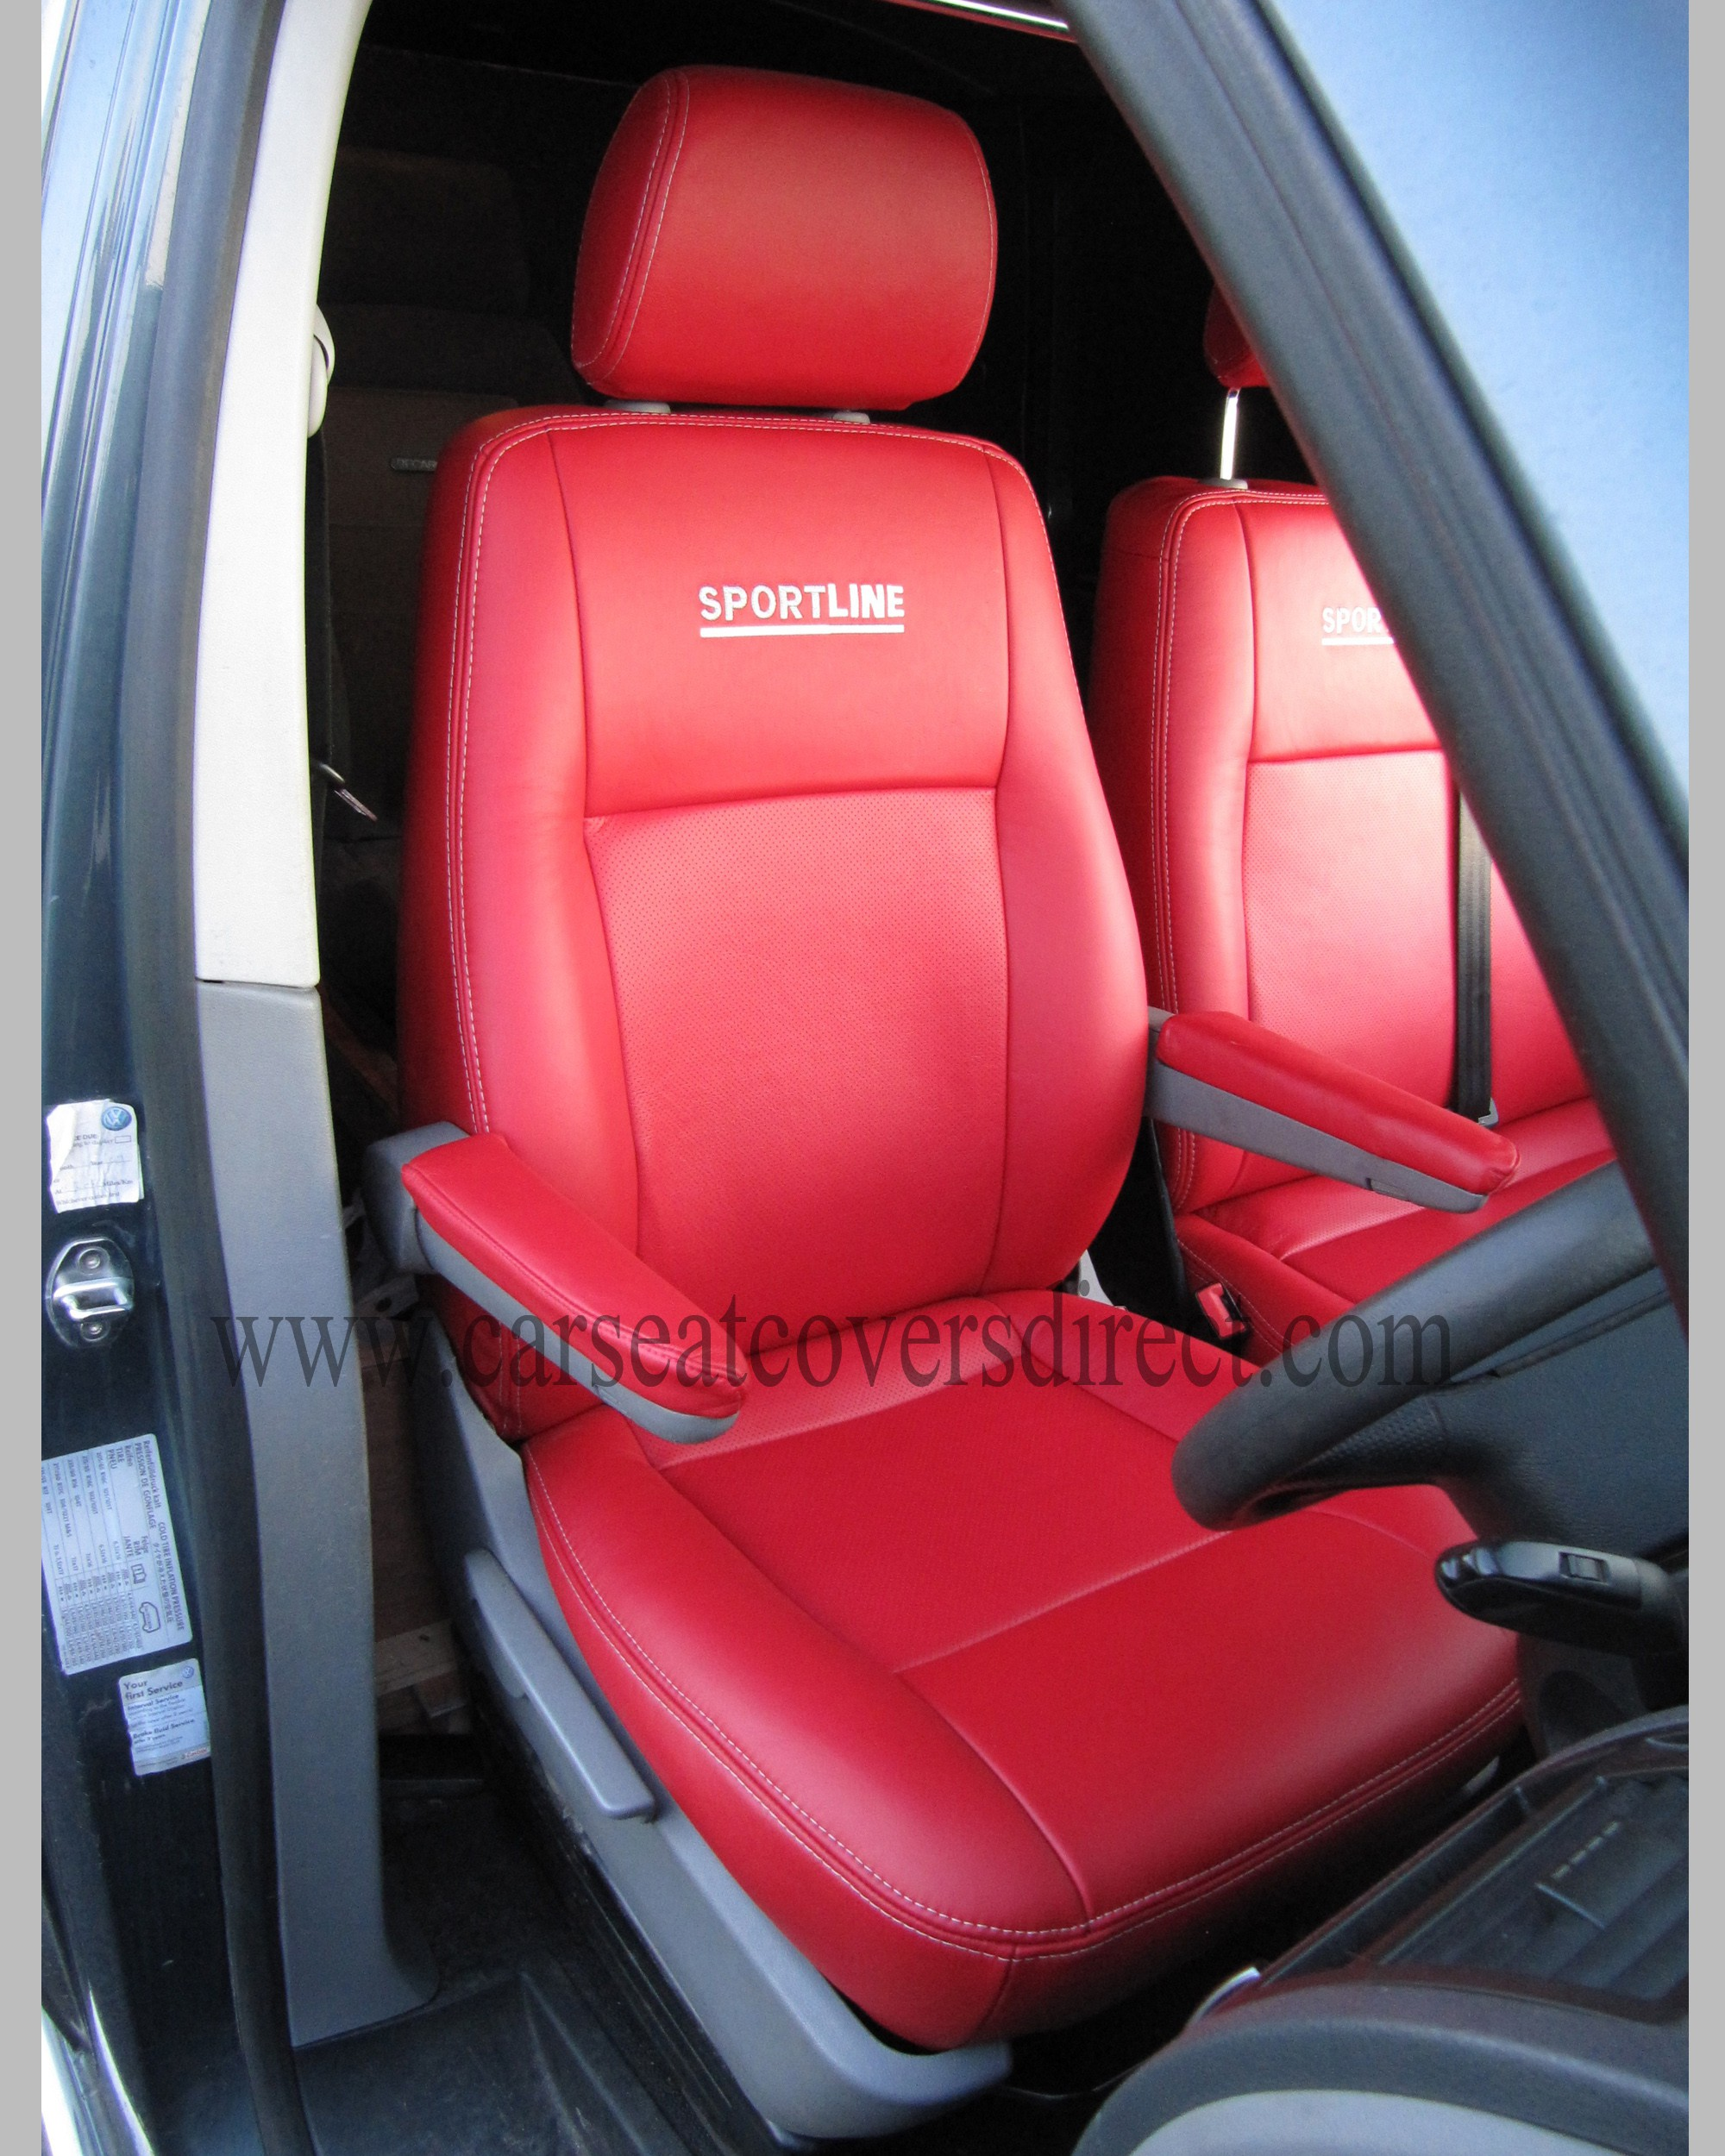 volkswagen vw transporter t5 leather retrim car seat covers direct tailored to your choice. Black Bedroom Furniture Sets. Home Design Ideas